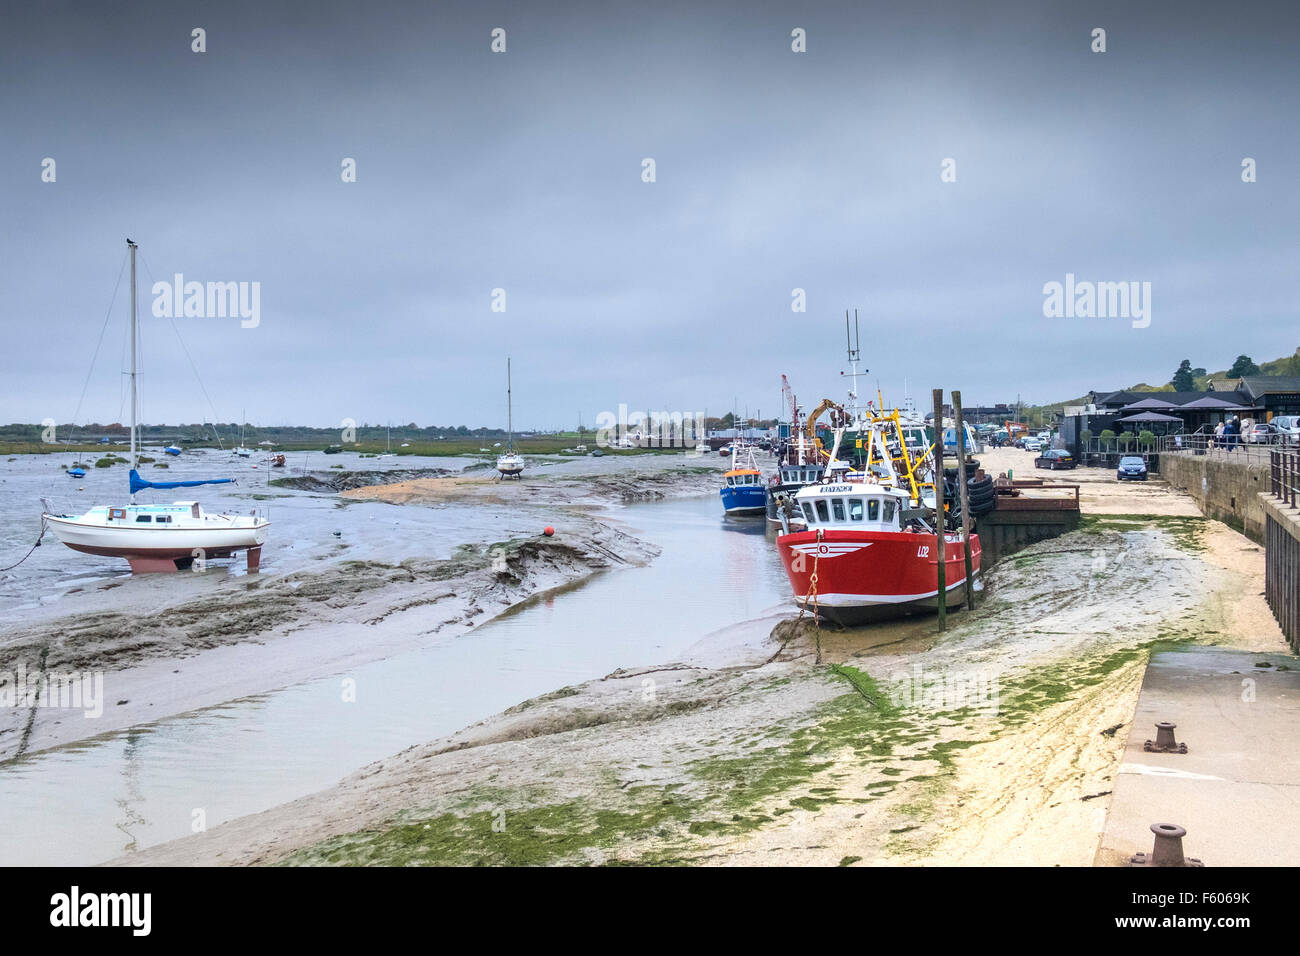 Cockle boats tied up at Leigh on Sea in Essex. - Stock Image